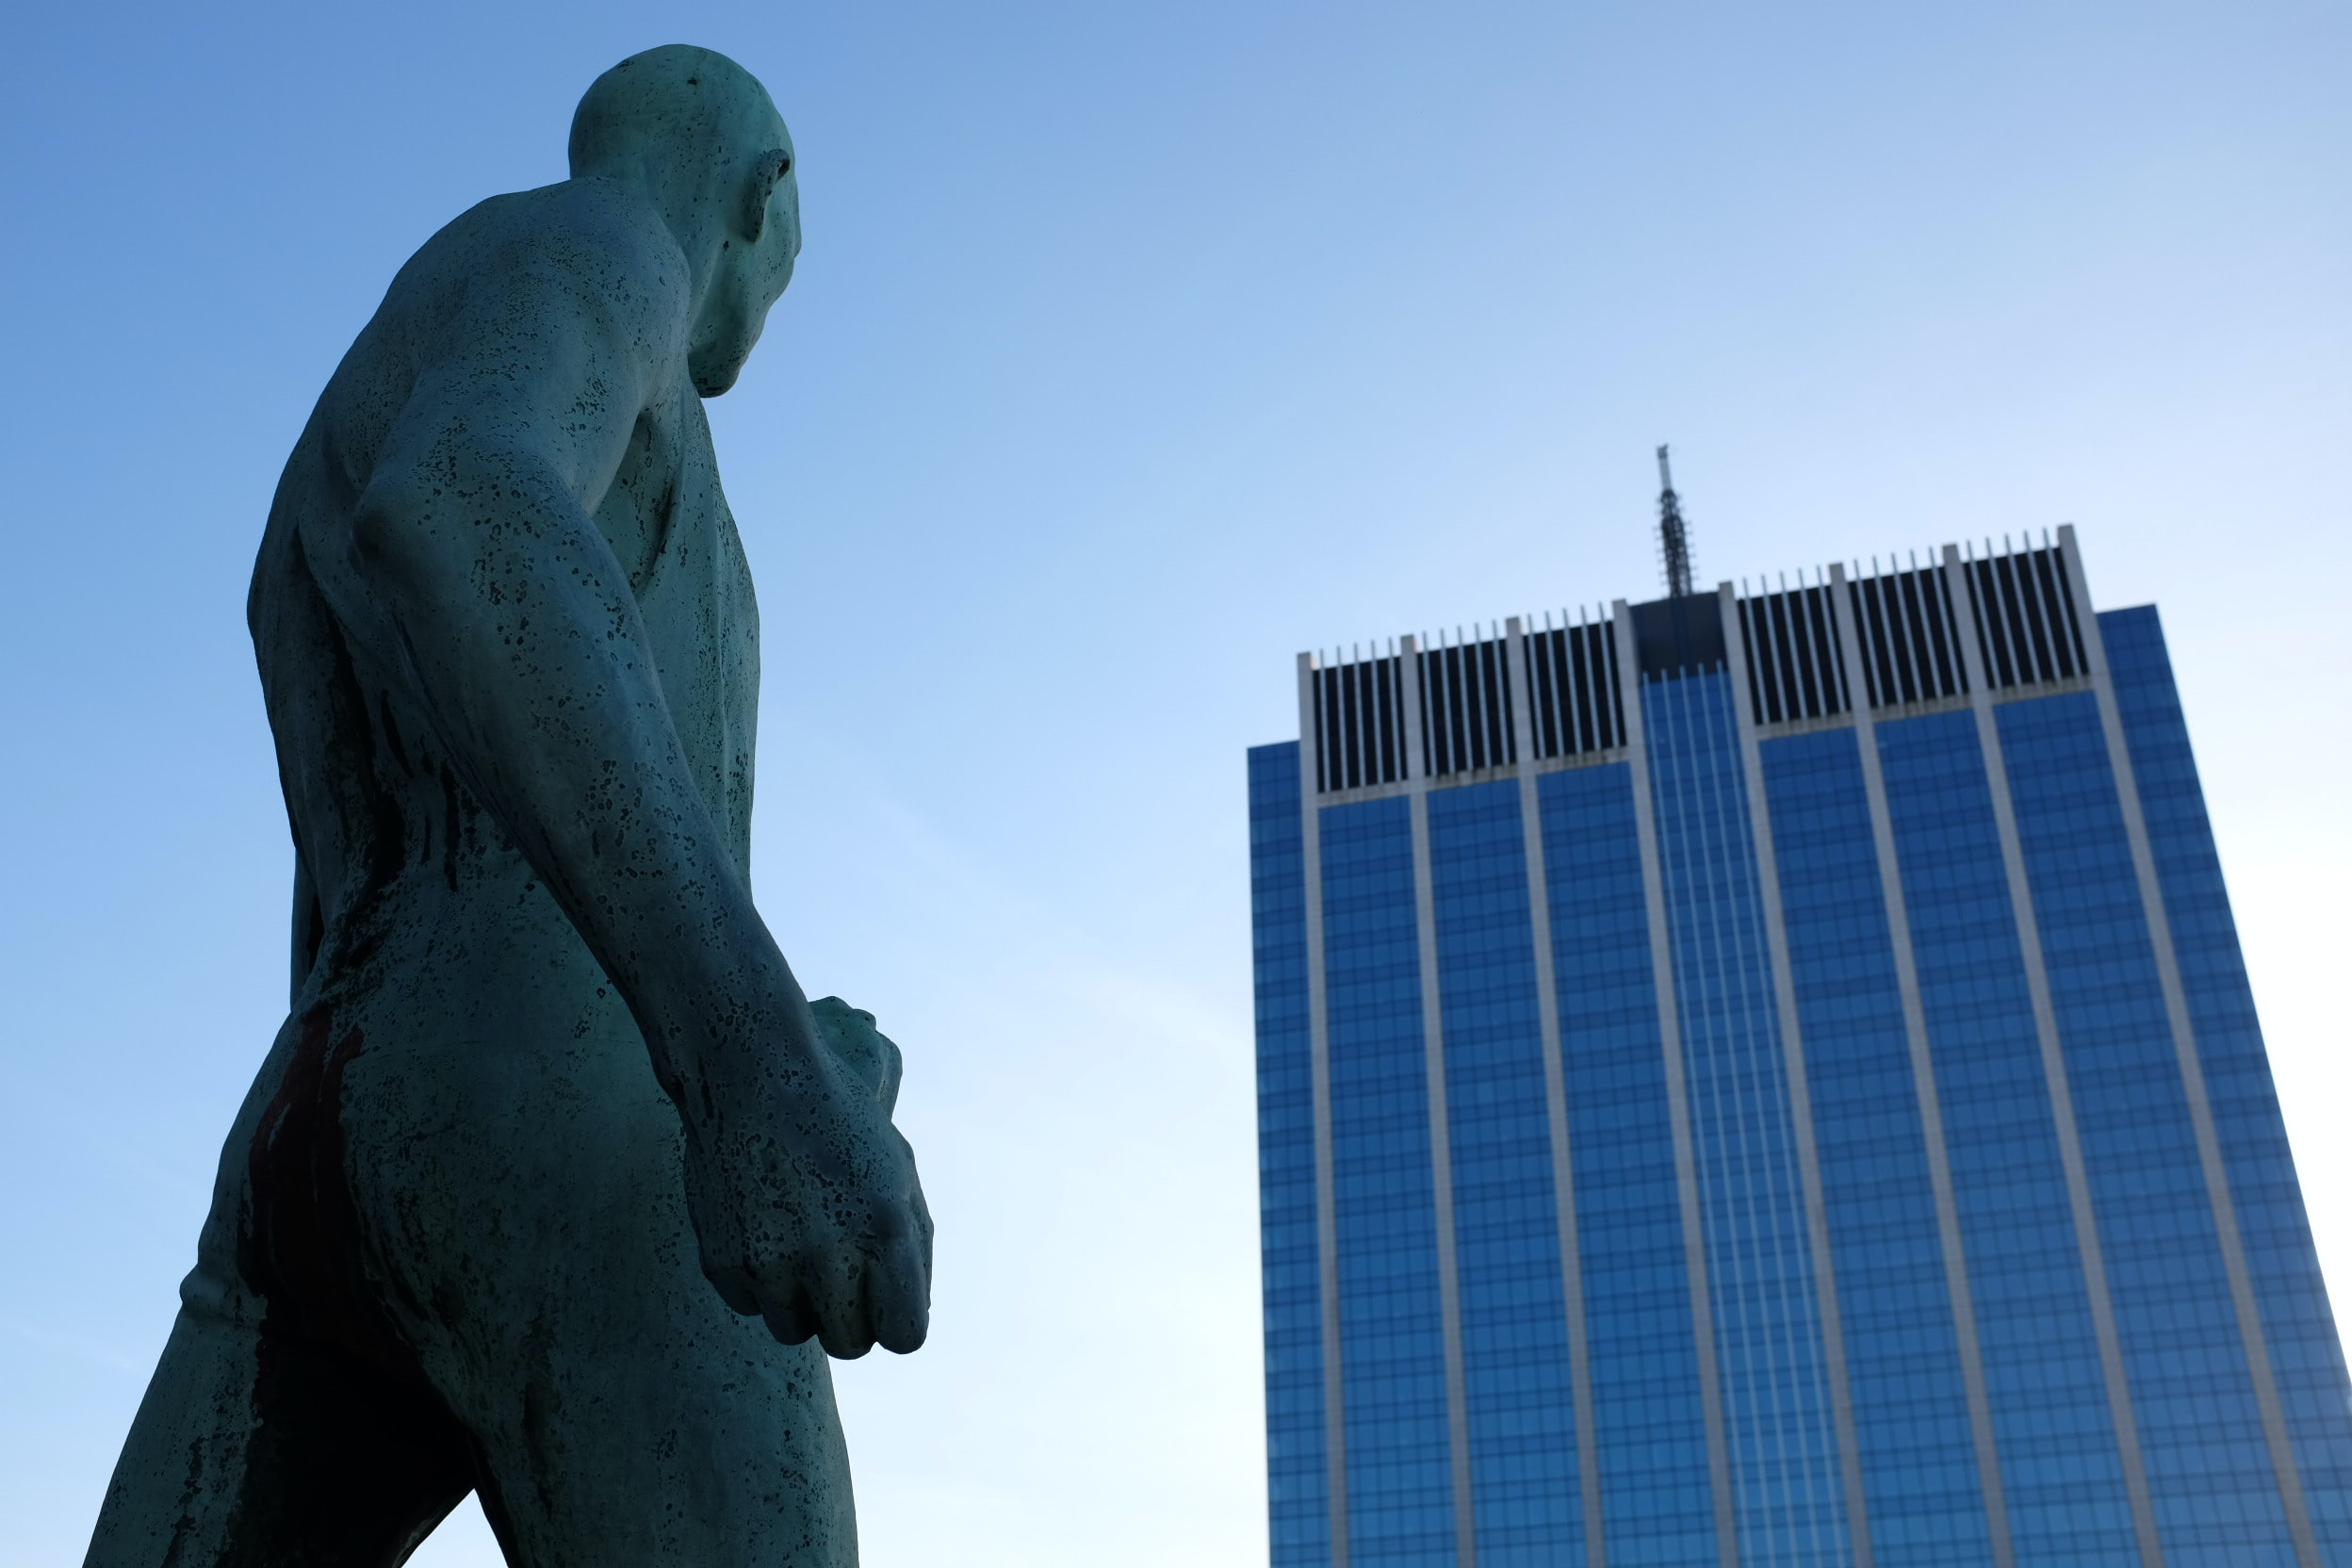 naked man statue in front high-rise building